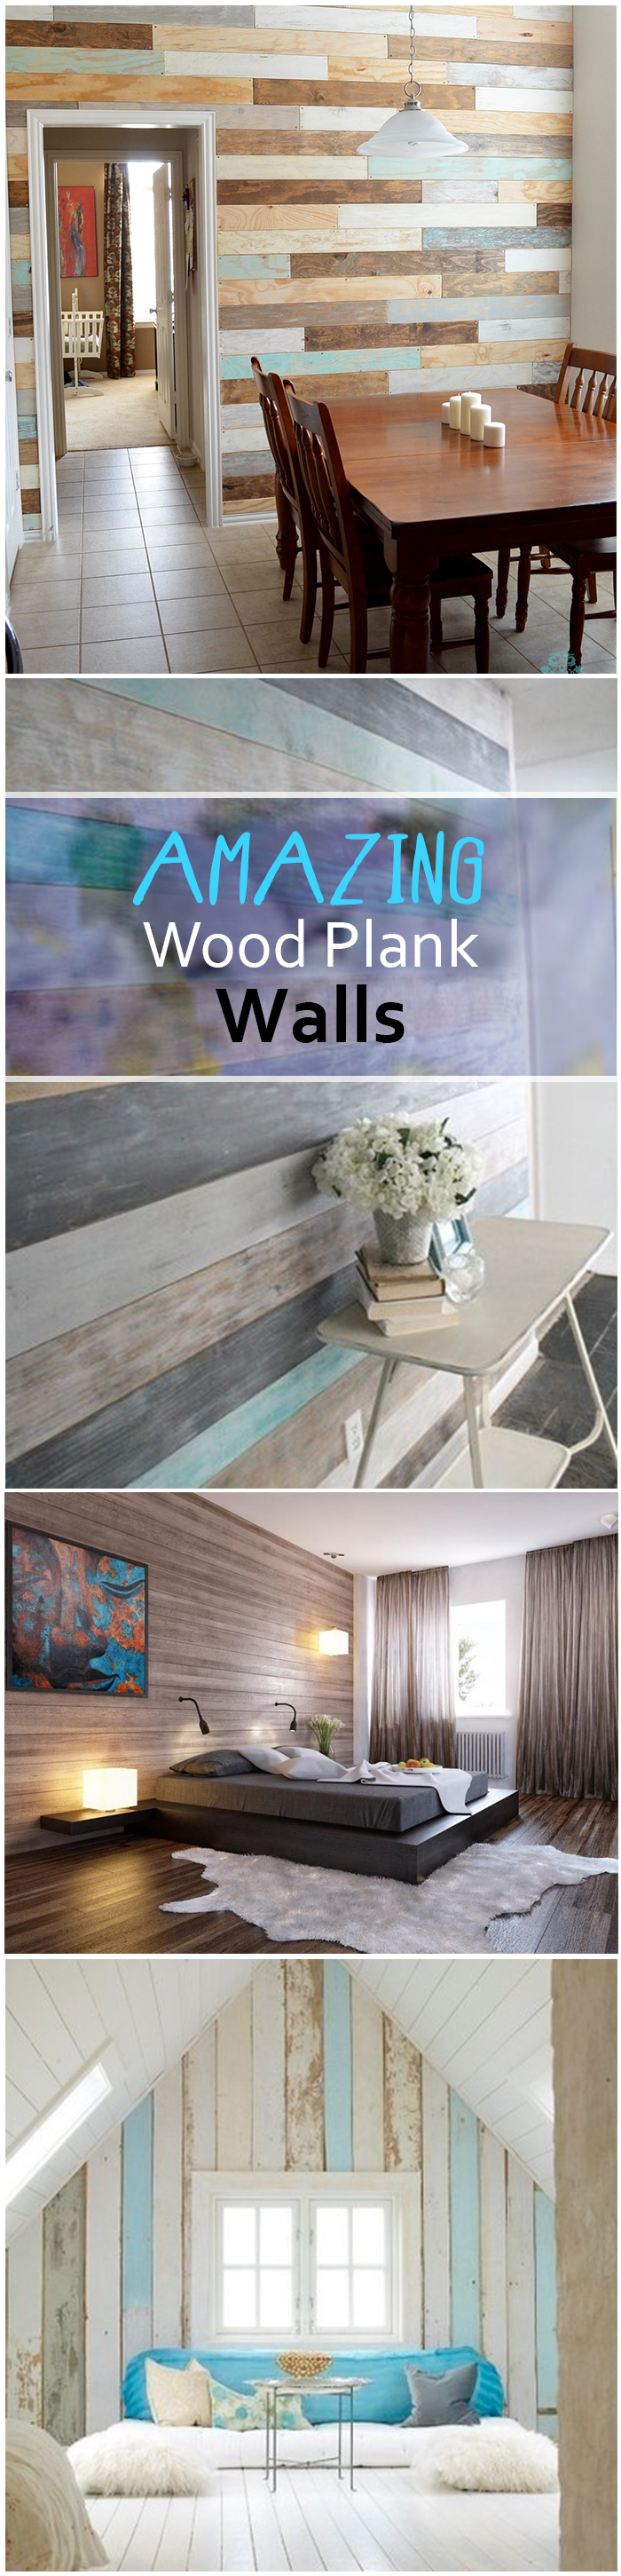 Amazing Wood Plank Walls